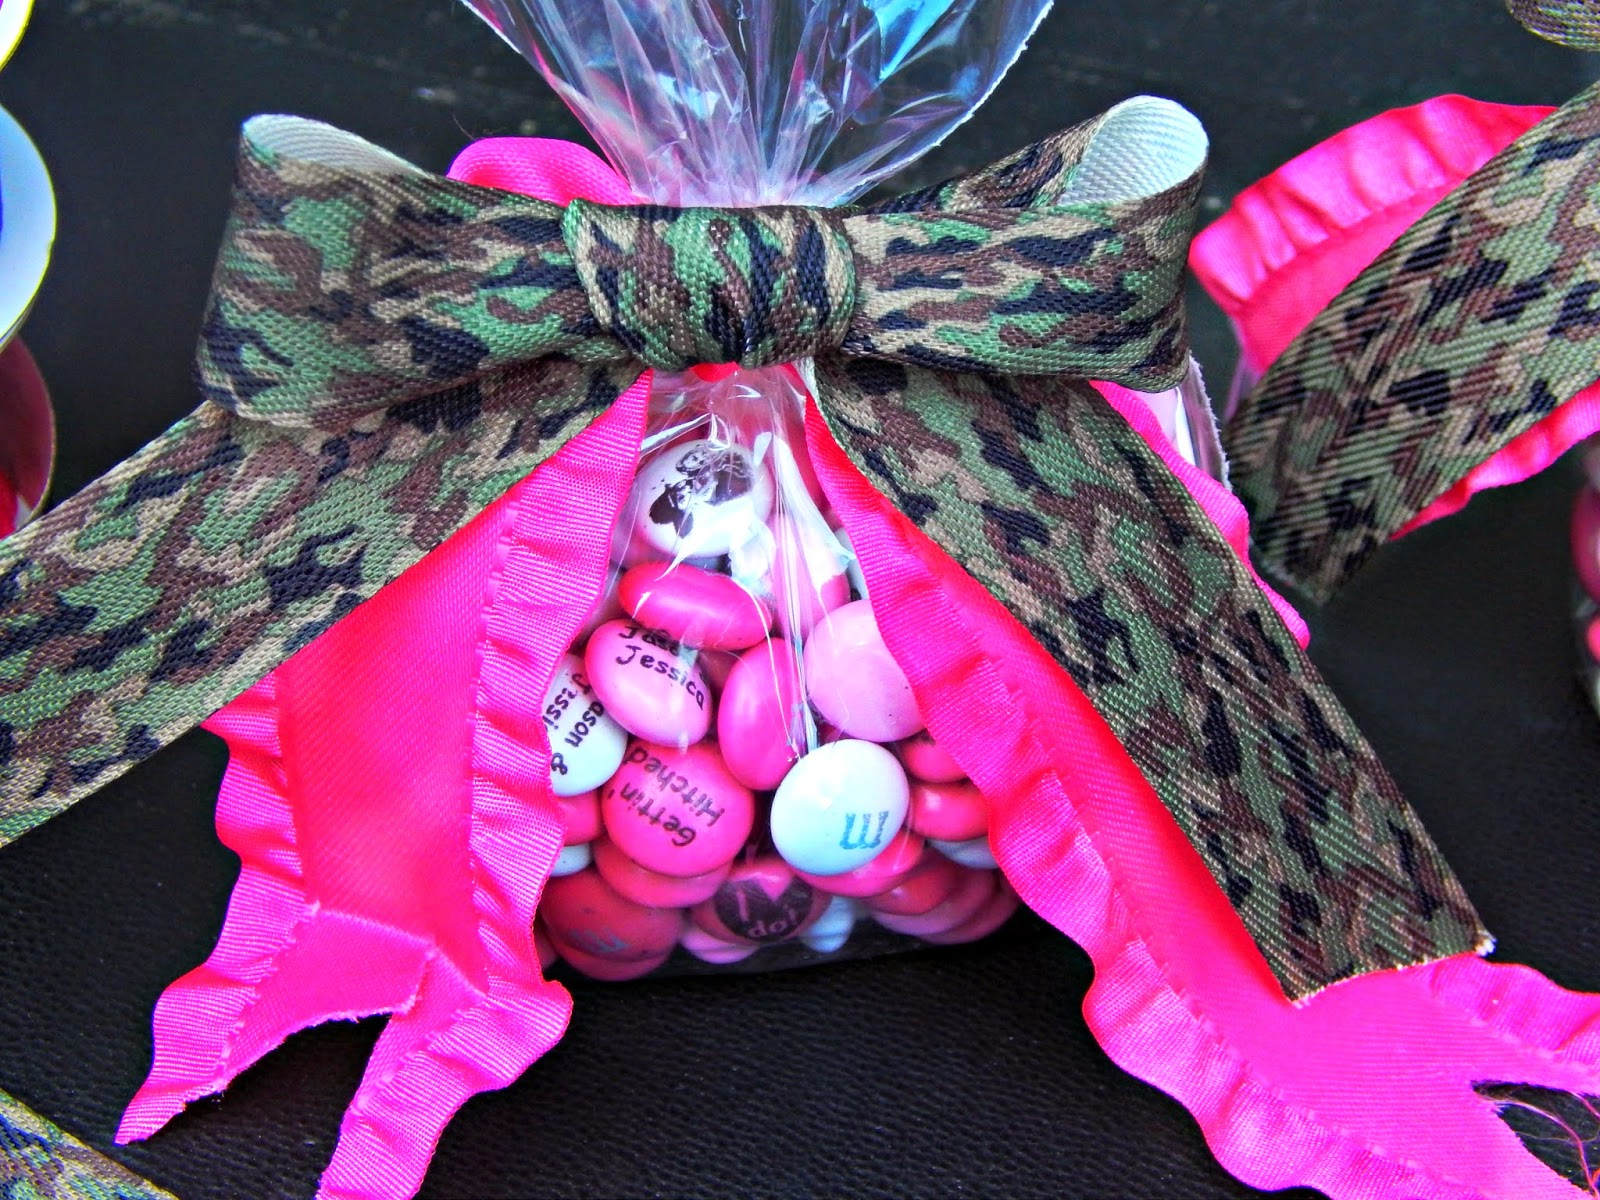 My M&M bridal shower gift idea #mc #sponsored #ambassador